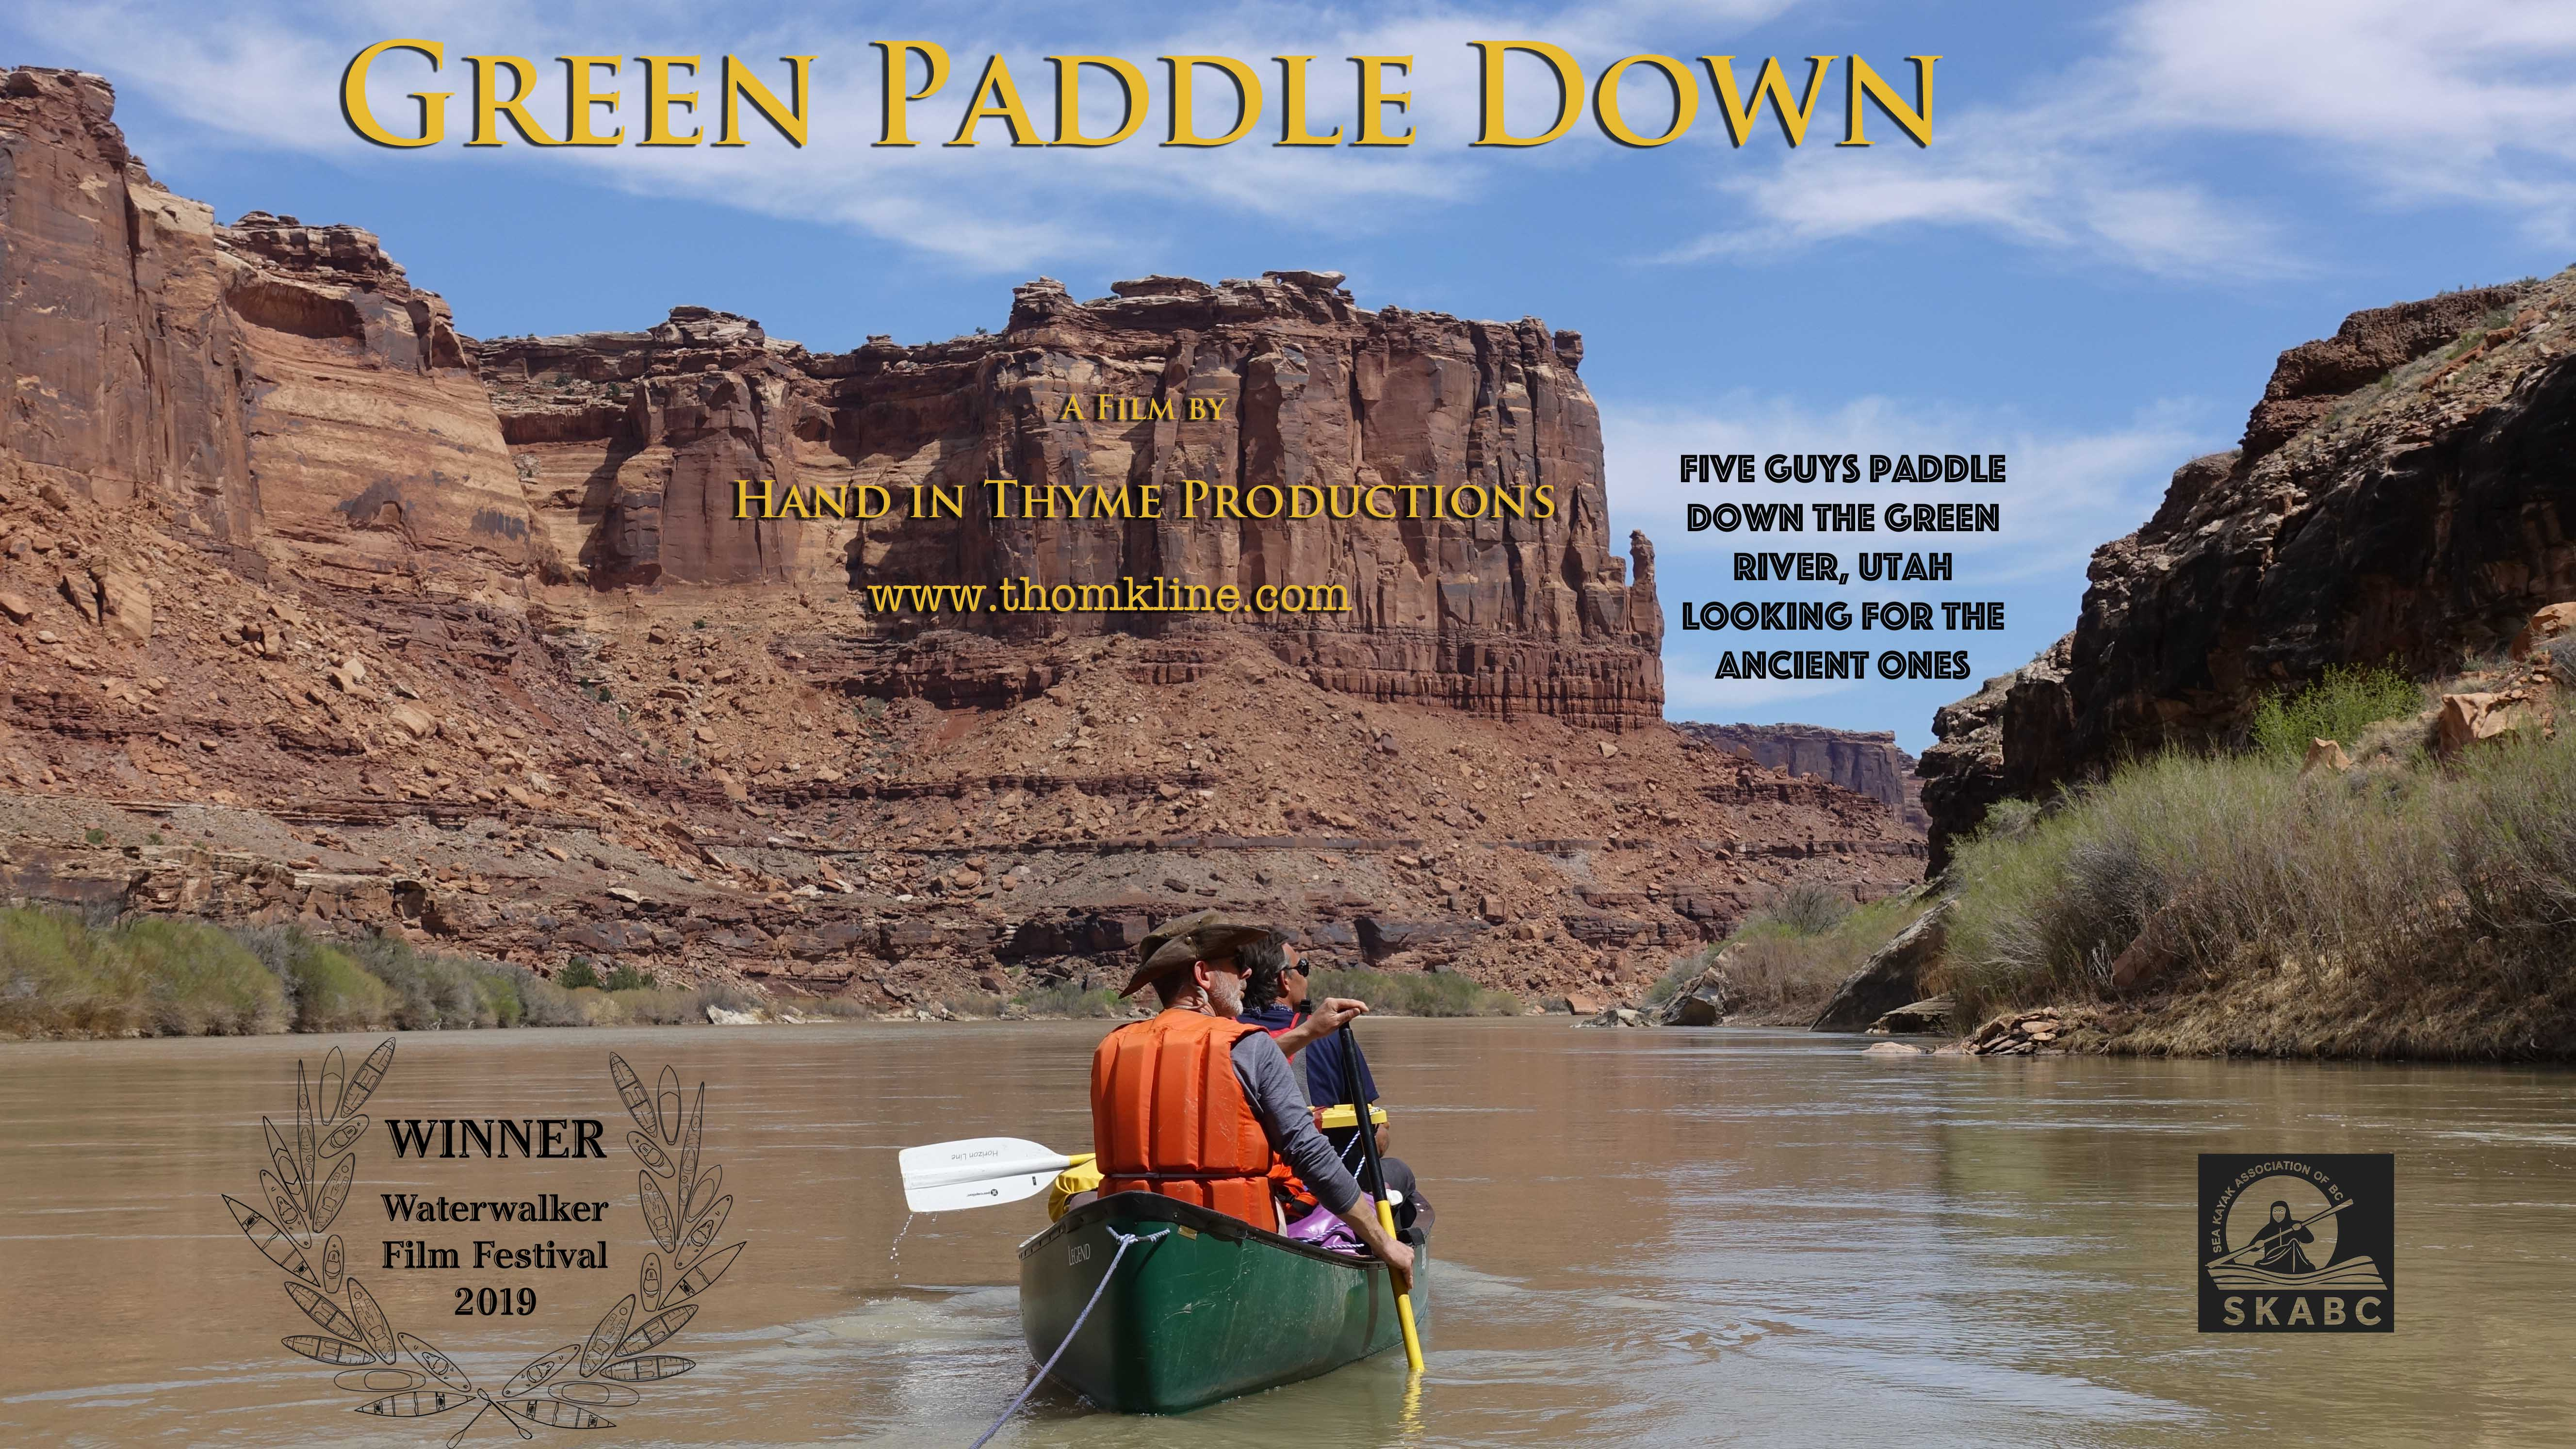 Five Guys paddle Down the Green River, Utah in search of the ancient ones.